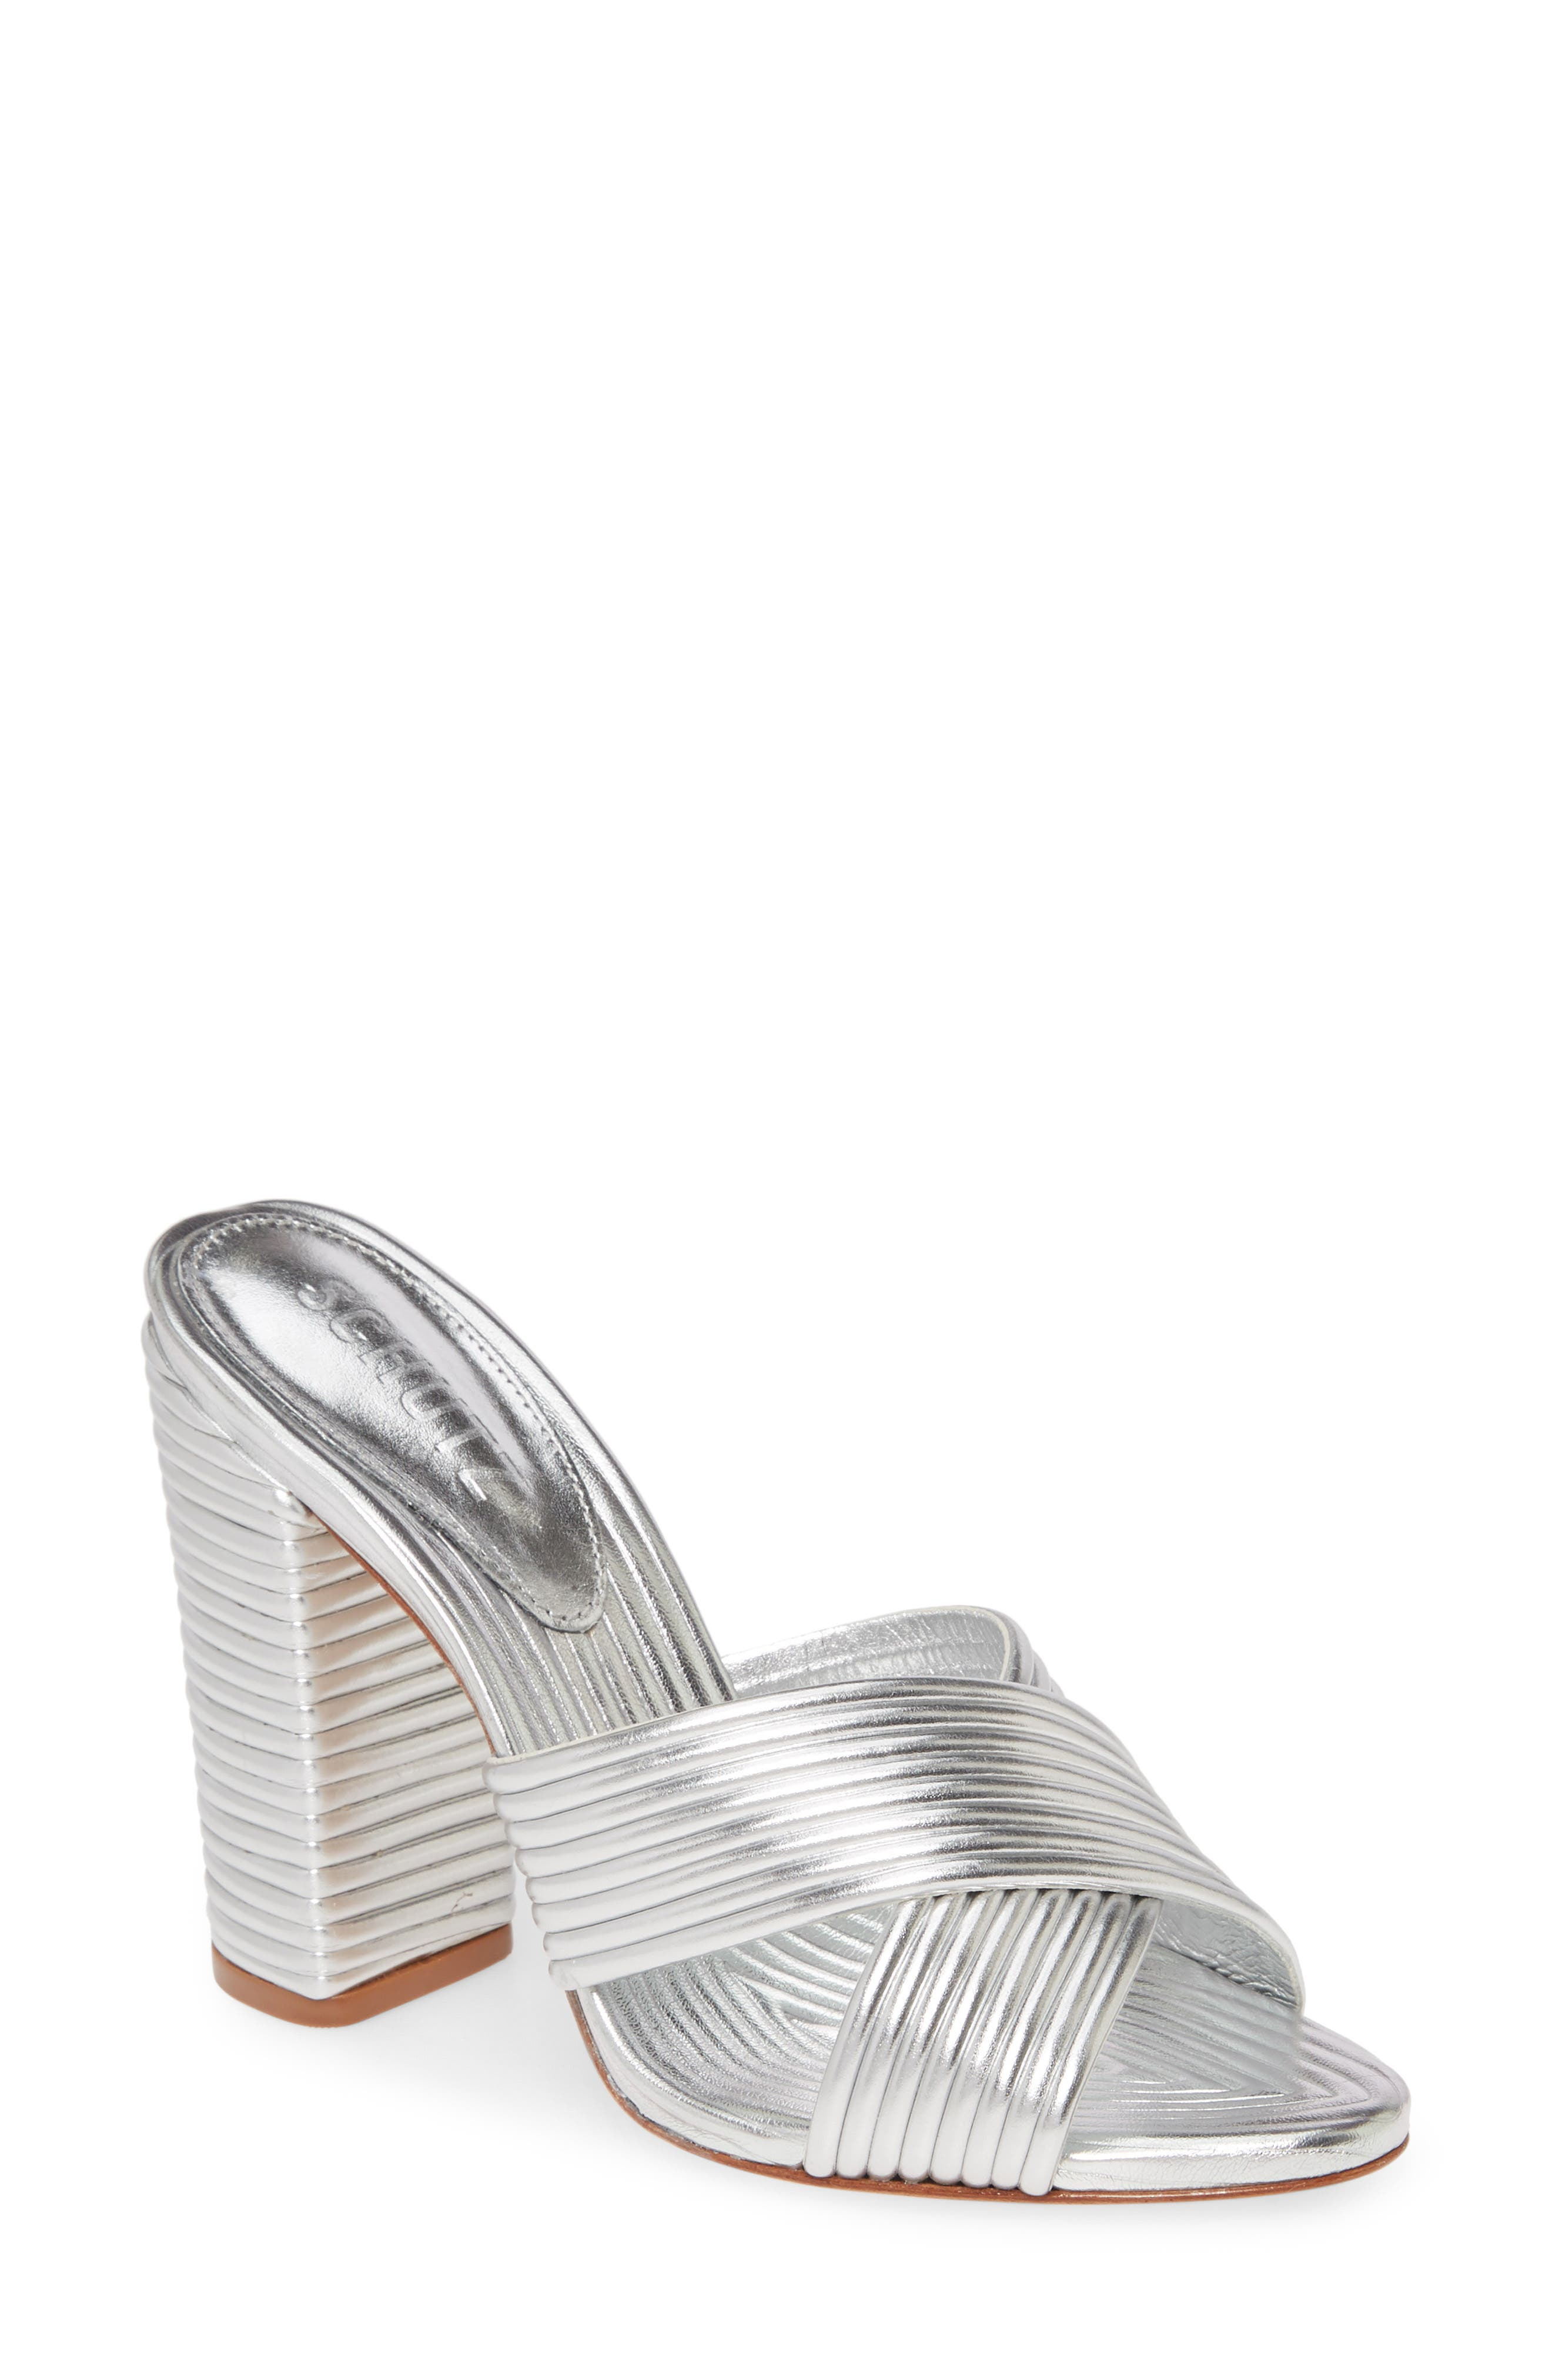 Channel quilting brings eye-catching texture to a shimmering slide sandal styled with thick crisscross straps and a lofty block heel. Style Name: Schutz Emma Dale Block Heel Slide Sandal (Women). Style Number: 5911284 1. Available in stores.